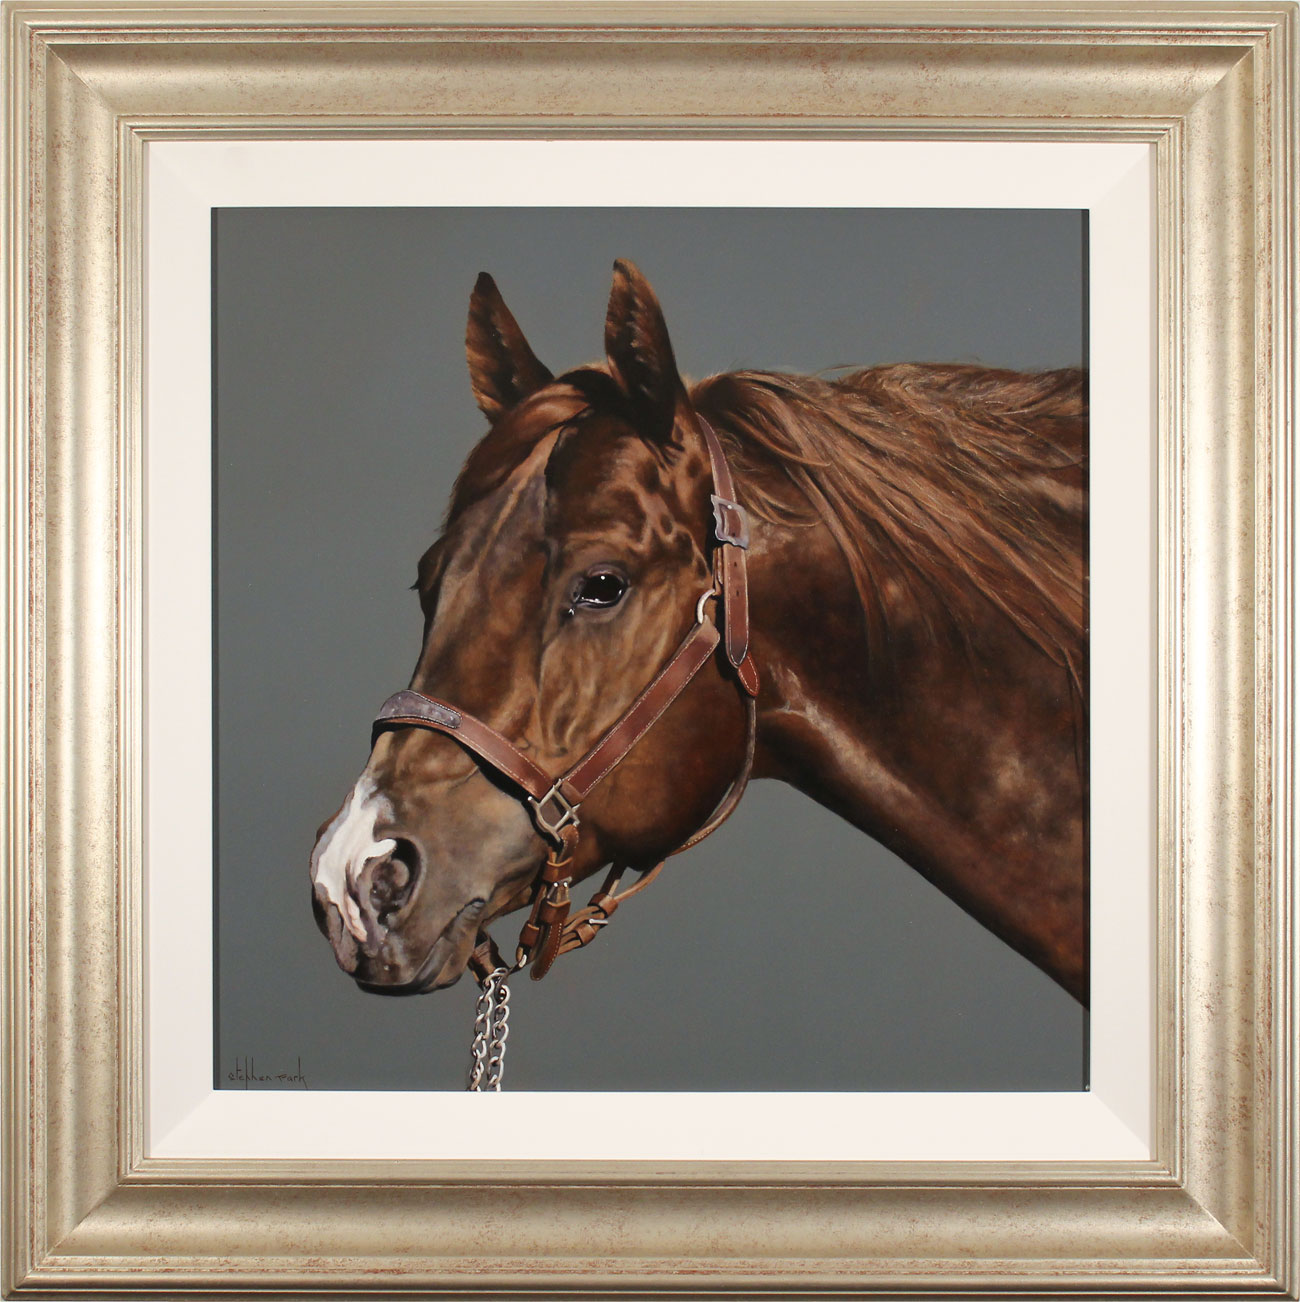 Stephen Park, Original oil painting on panel, Thoroughbred Stallion, click to enlarge